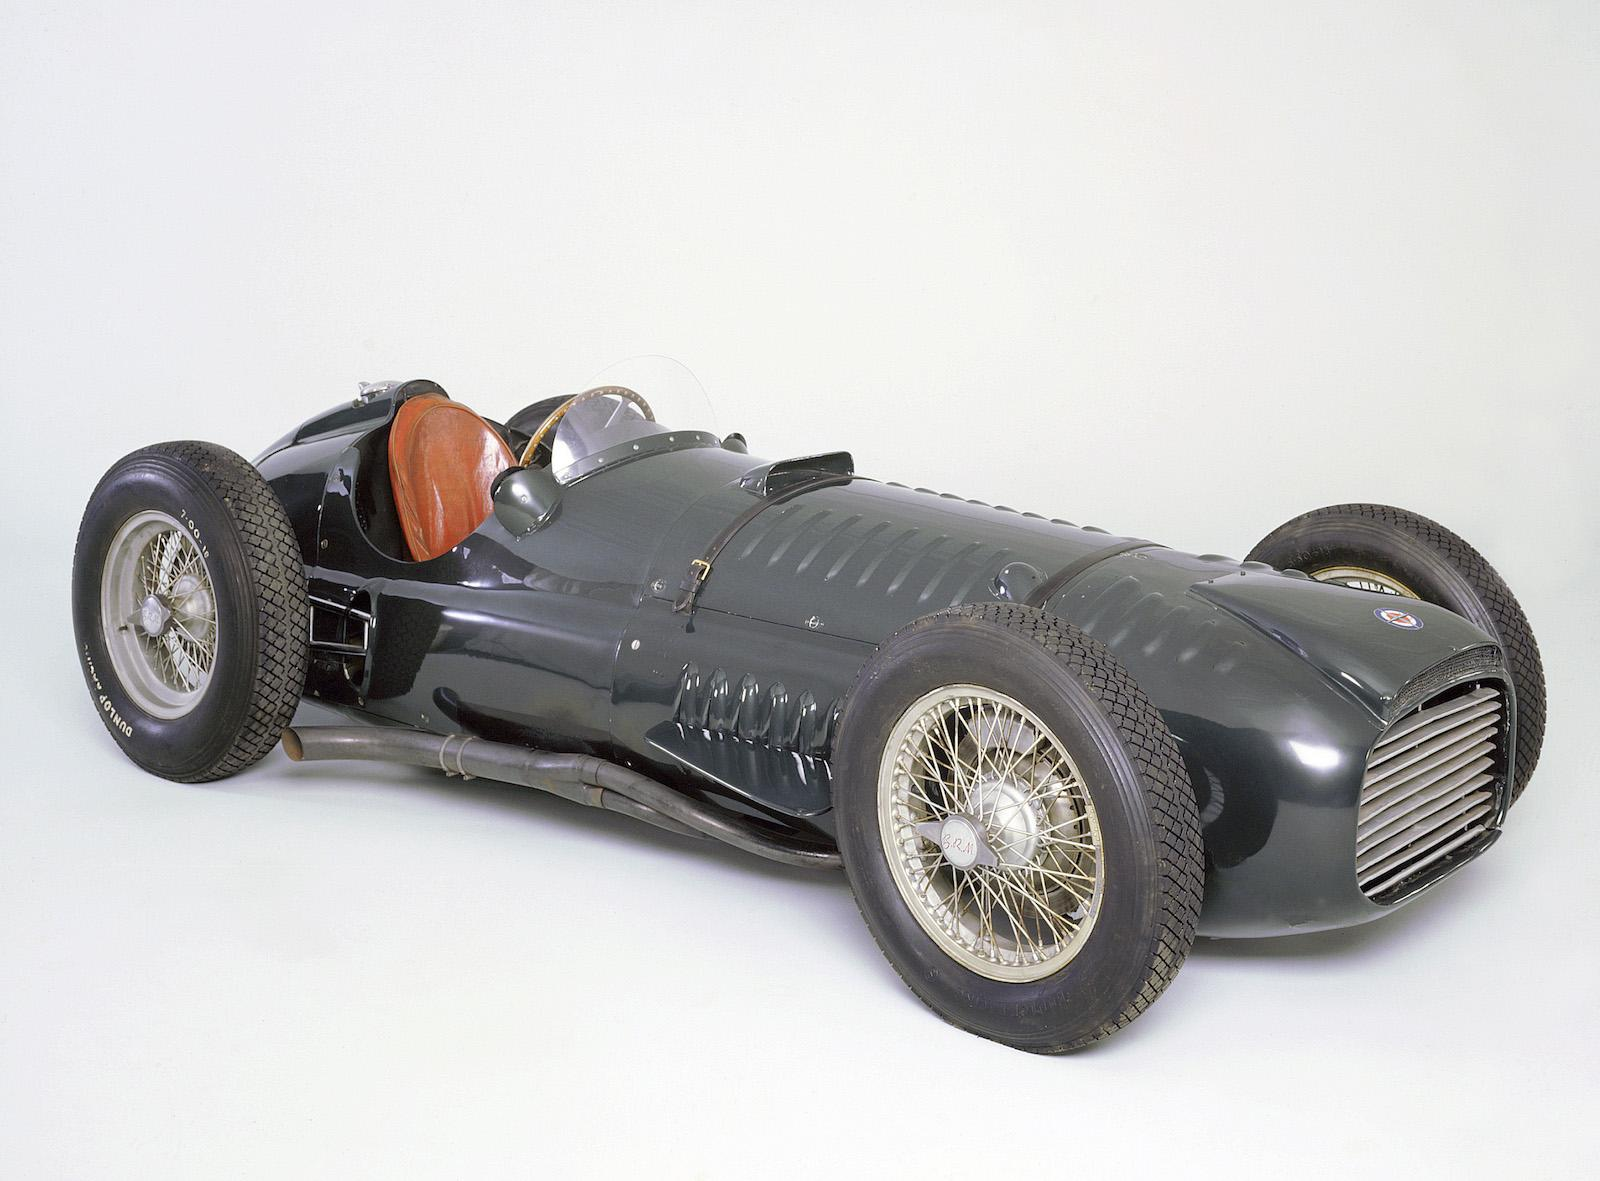 1950 BRM V16 to fire into life once again